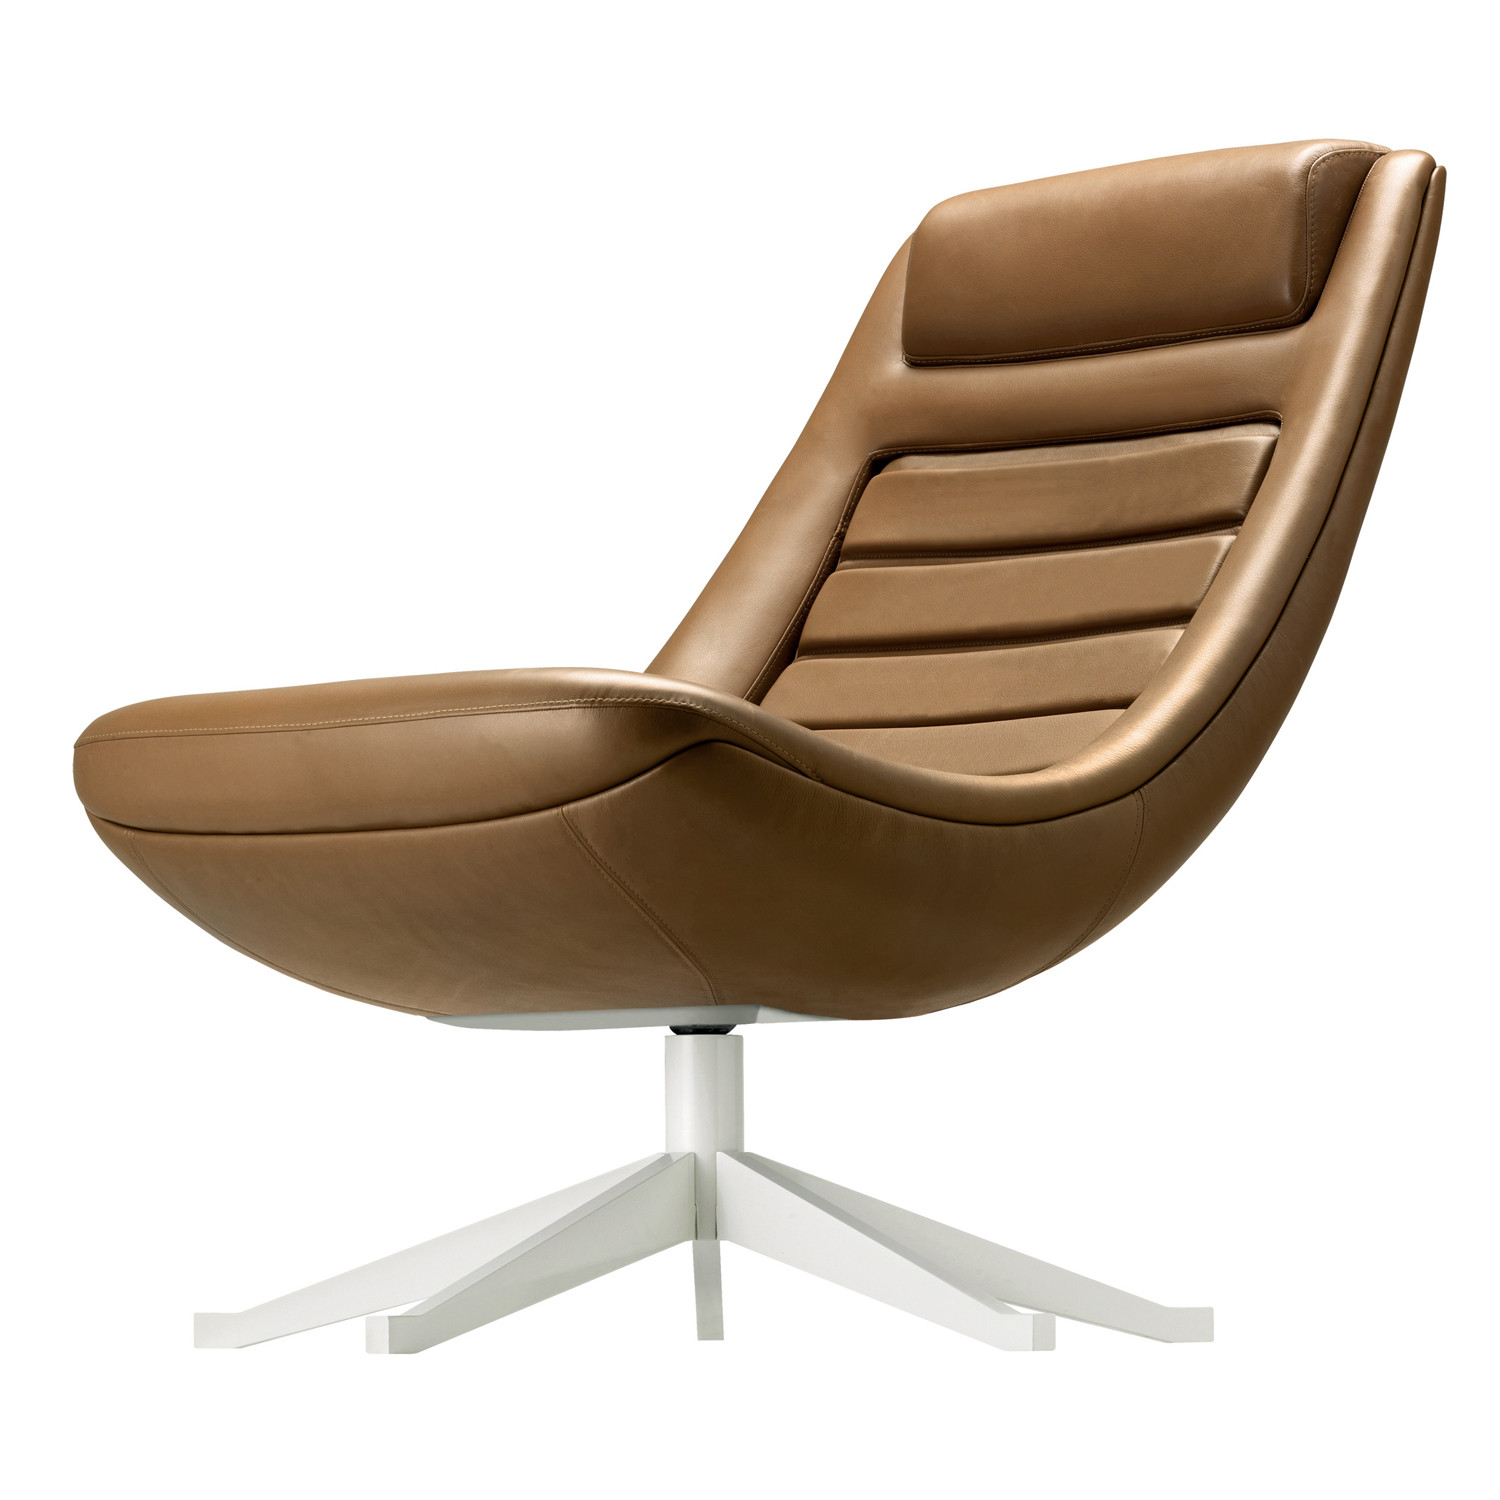 Manzù Armchair upholstered in leather Stolz